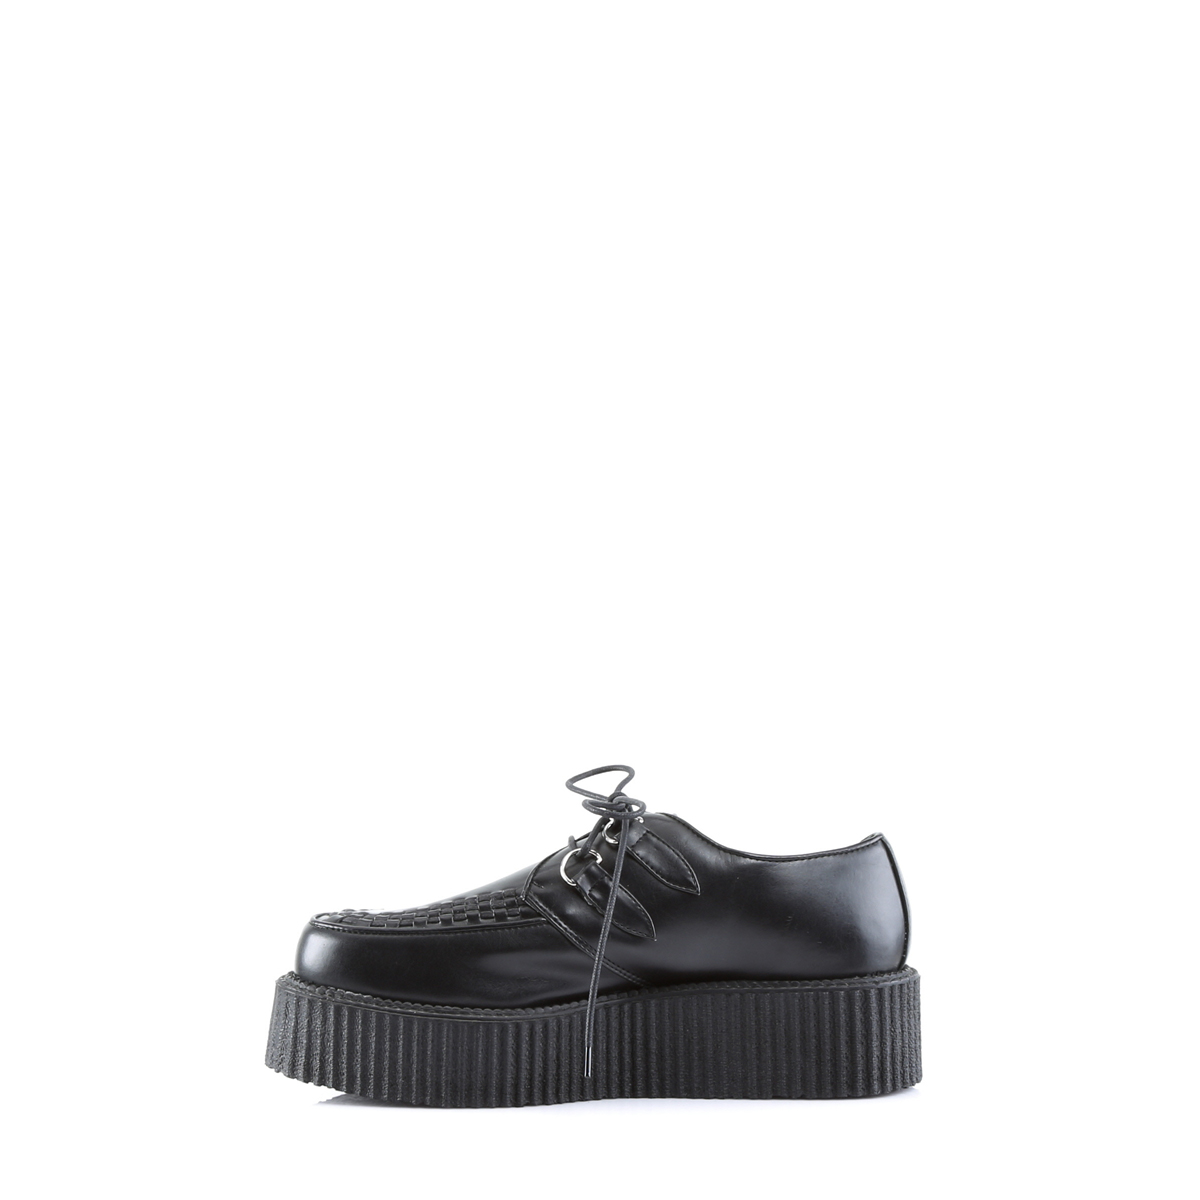 v-creeper-502-b-pu05